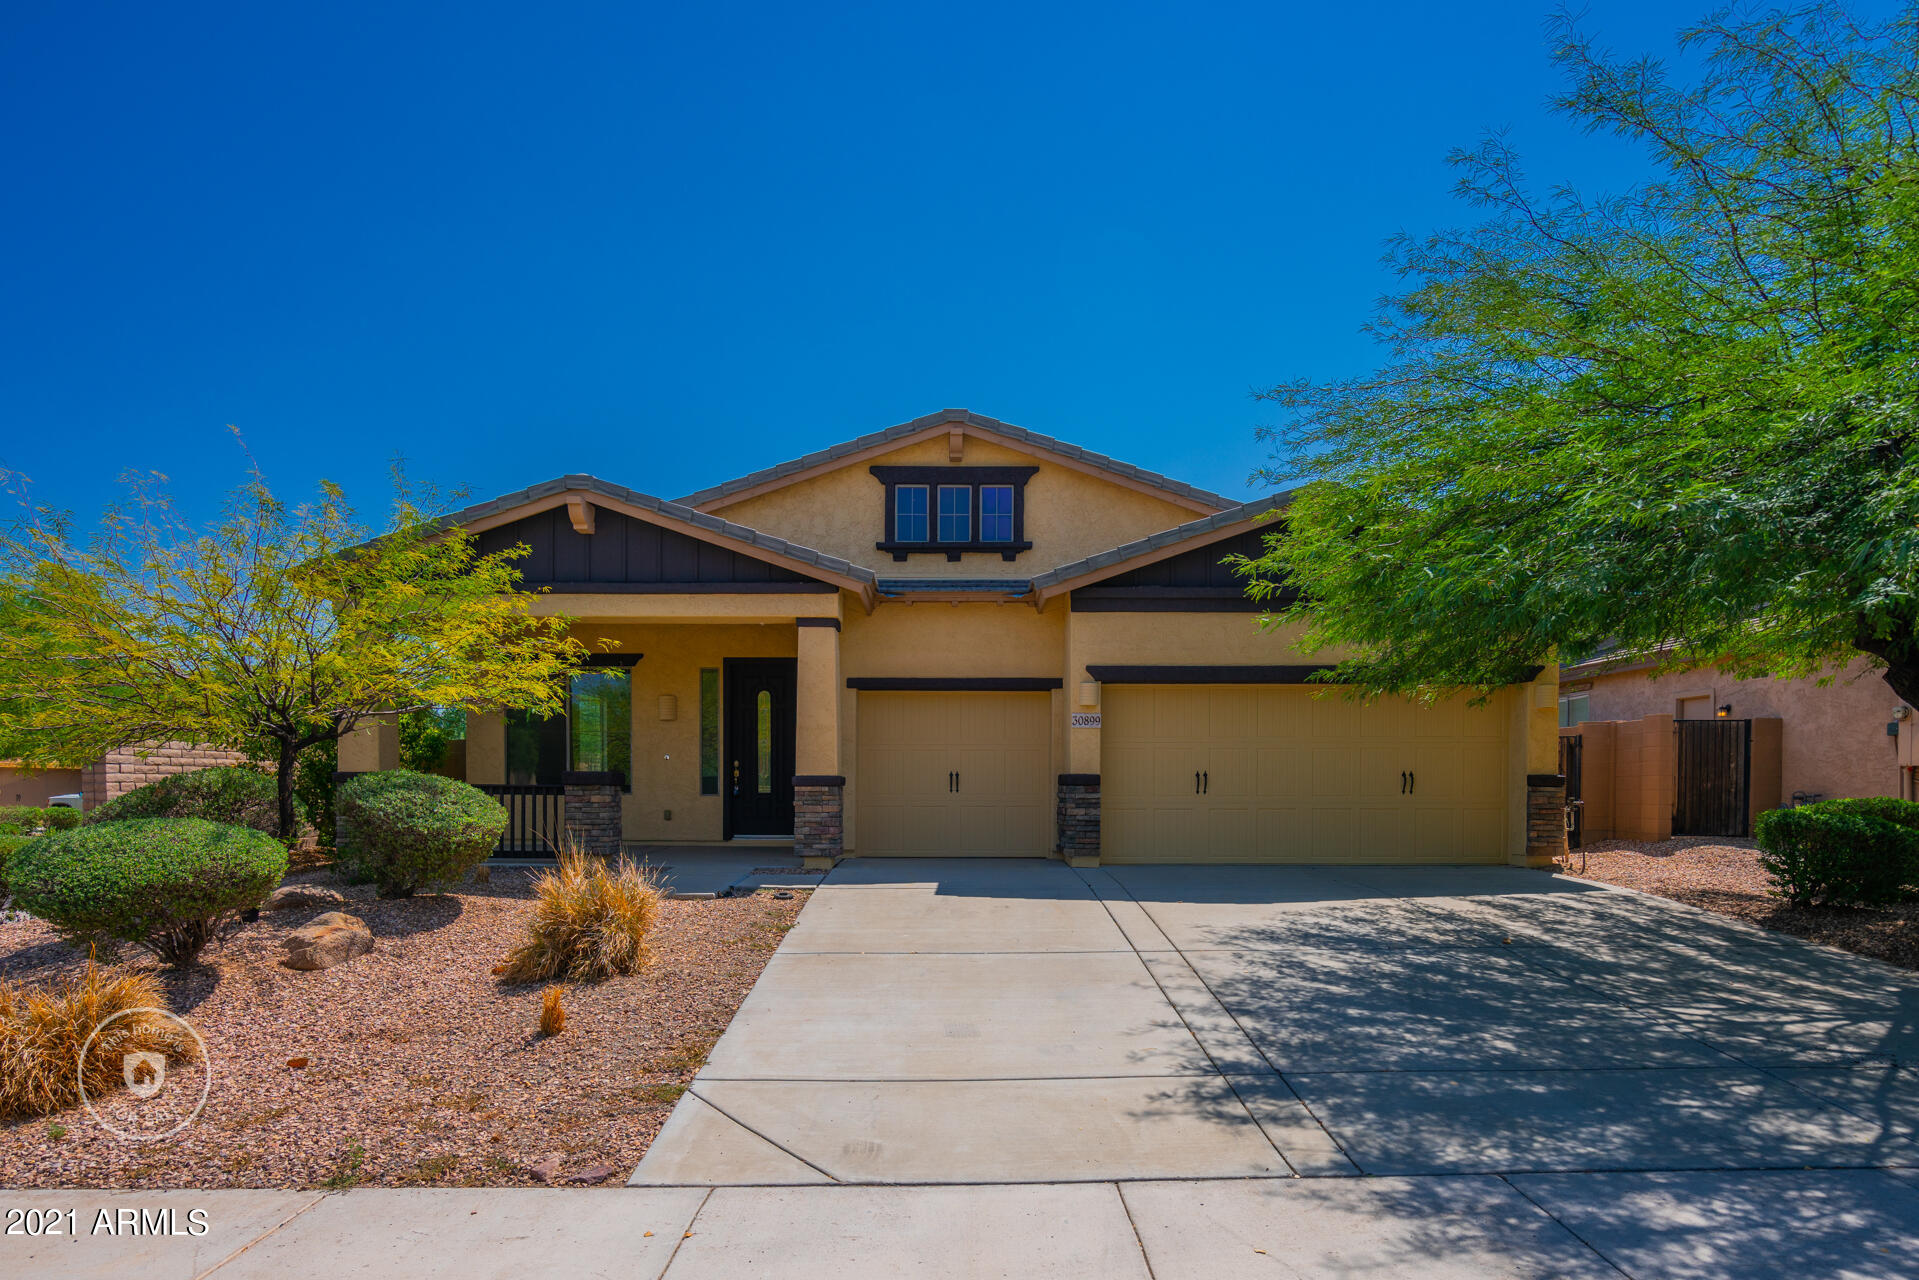 30899 N 126TH Avenue, Peoria, AZ 85383, 3 Bedrooms Bedrooms, ,Residential,For Sale,30899 N 126TH Avenue,6292246